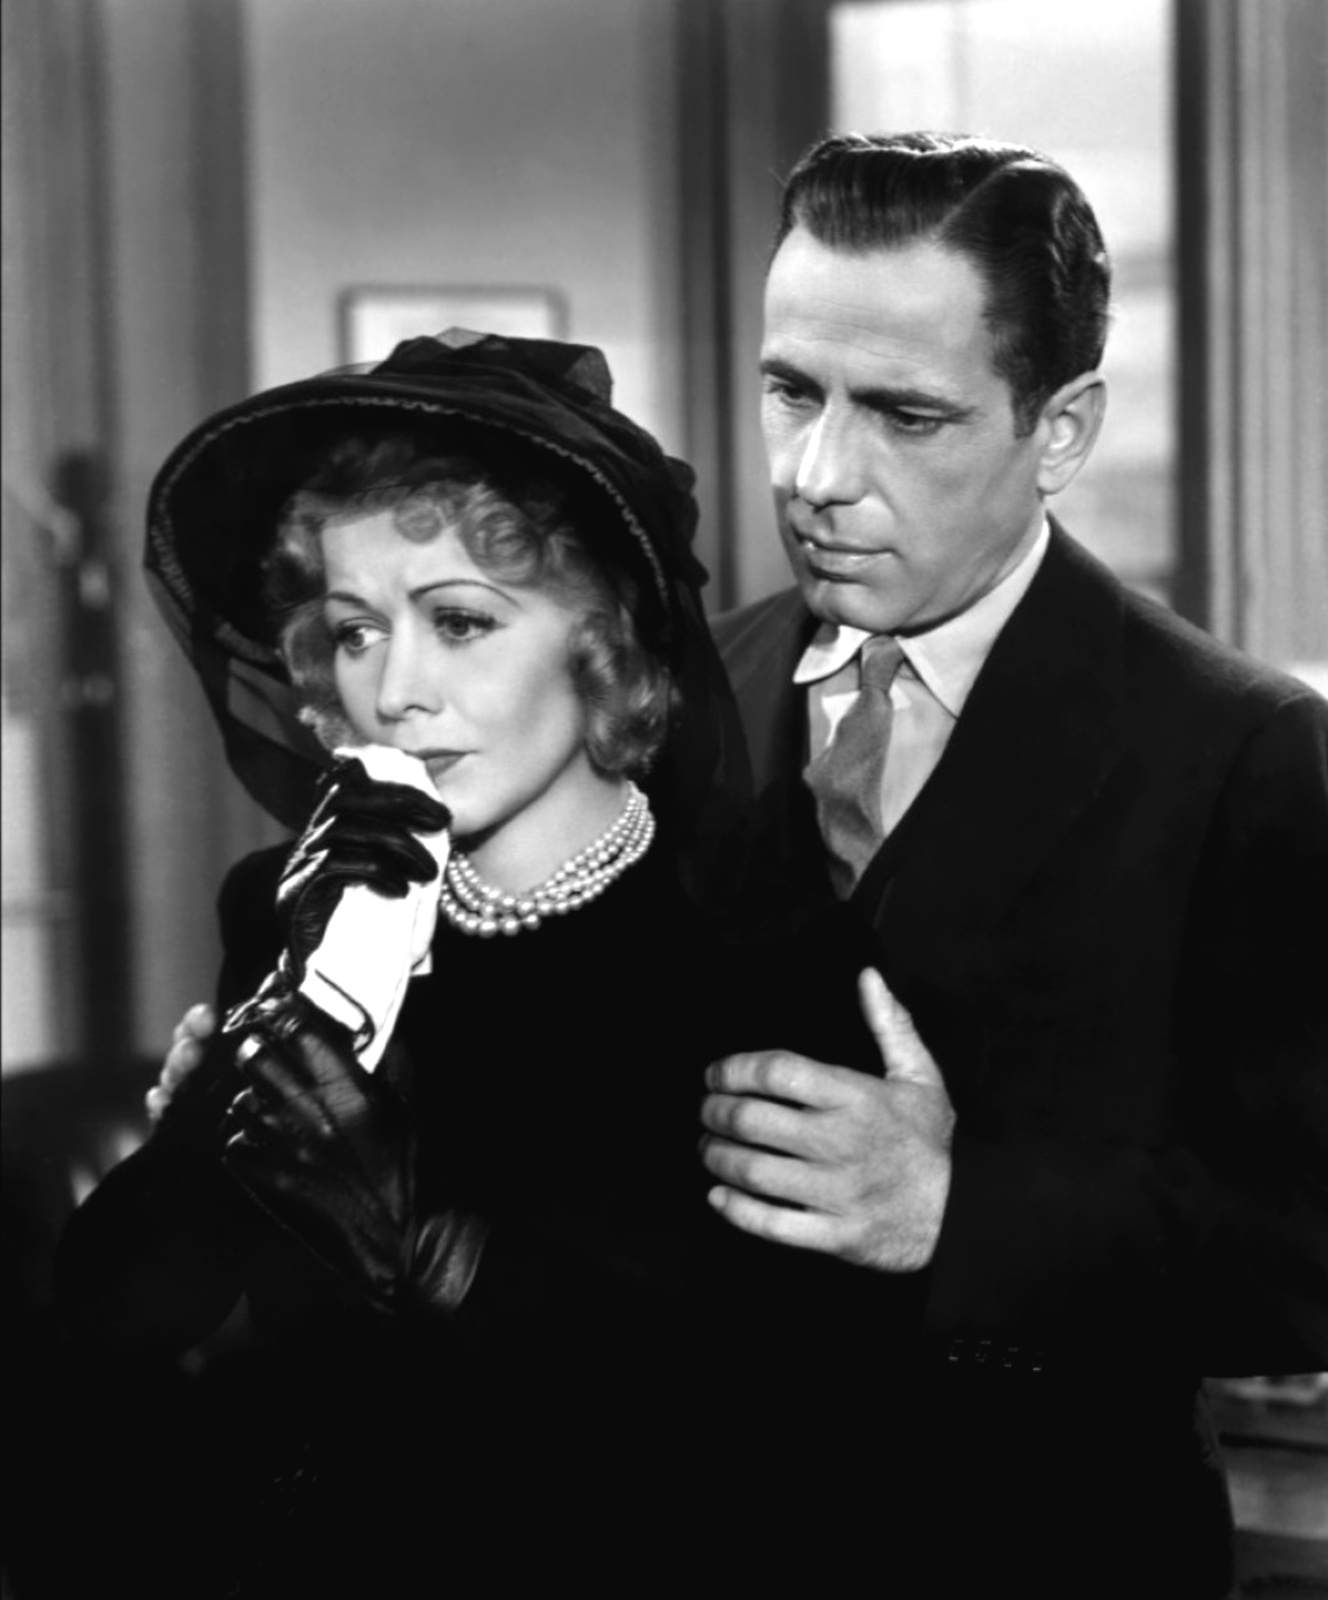 sparknotes maltese falcon The maltese falcon summary chapter 1: spade & archerthe maltese falcon begins when a beautiful woman, who gives her name as miss wonderly, comes.